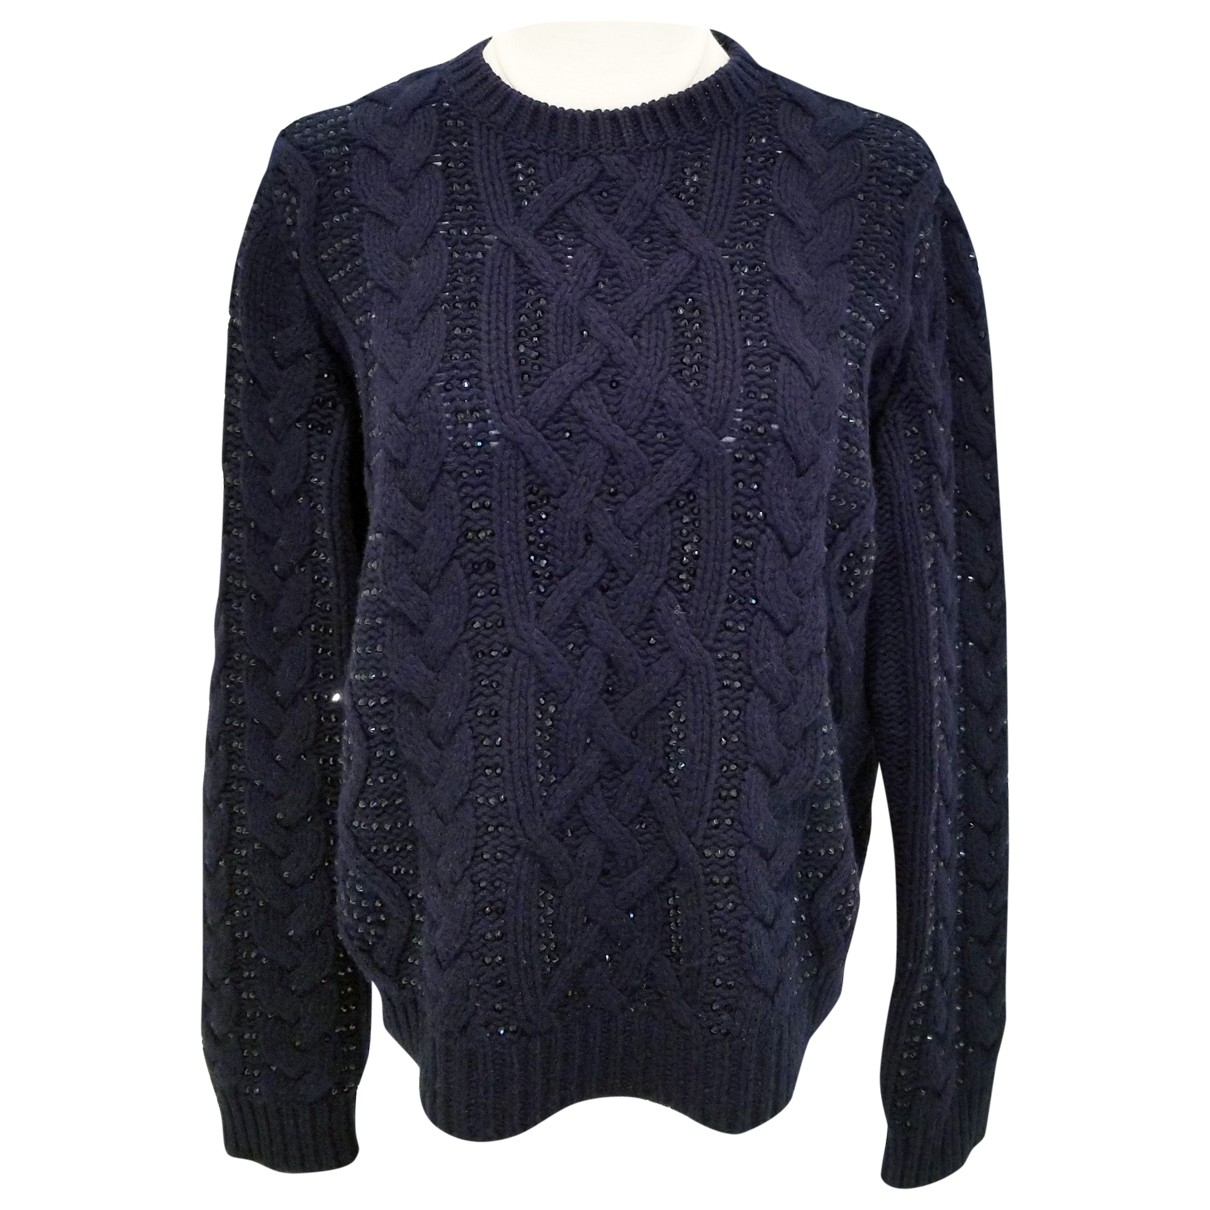 Valentino Garavani \N Navy Wool Knitwear for Women S International